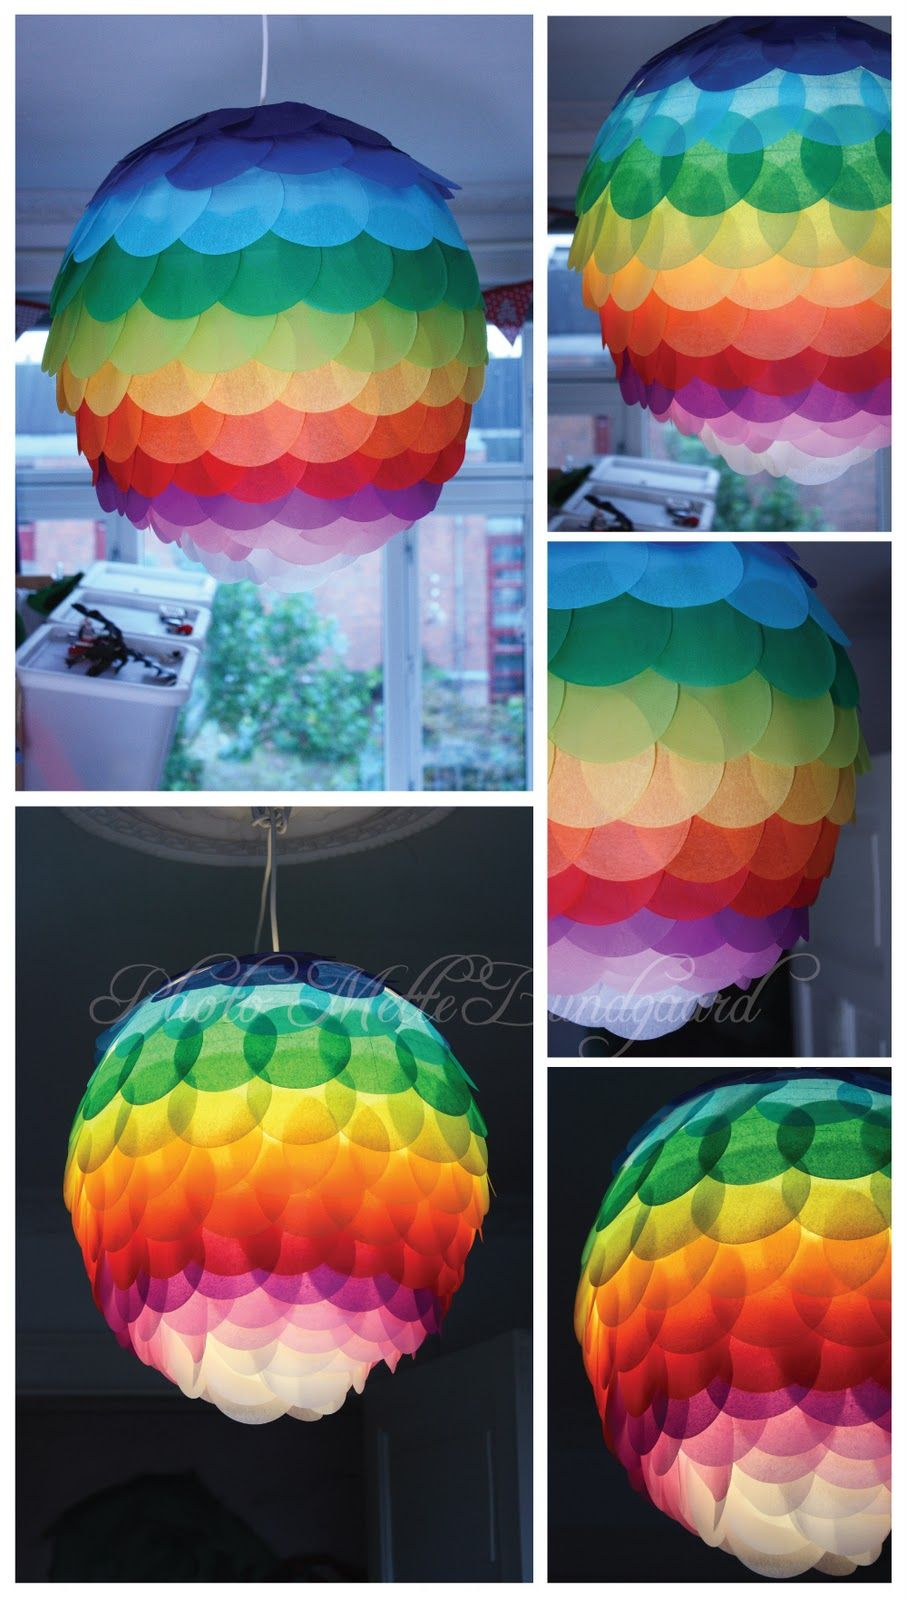 Metunda Universe: Regnbue rispapirslampe! | Miscellaneous crafts ... for Diy Paper Lamp Ideas  143gtk